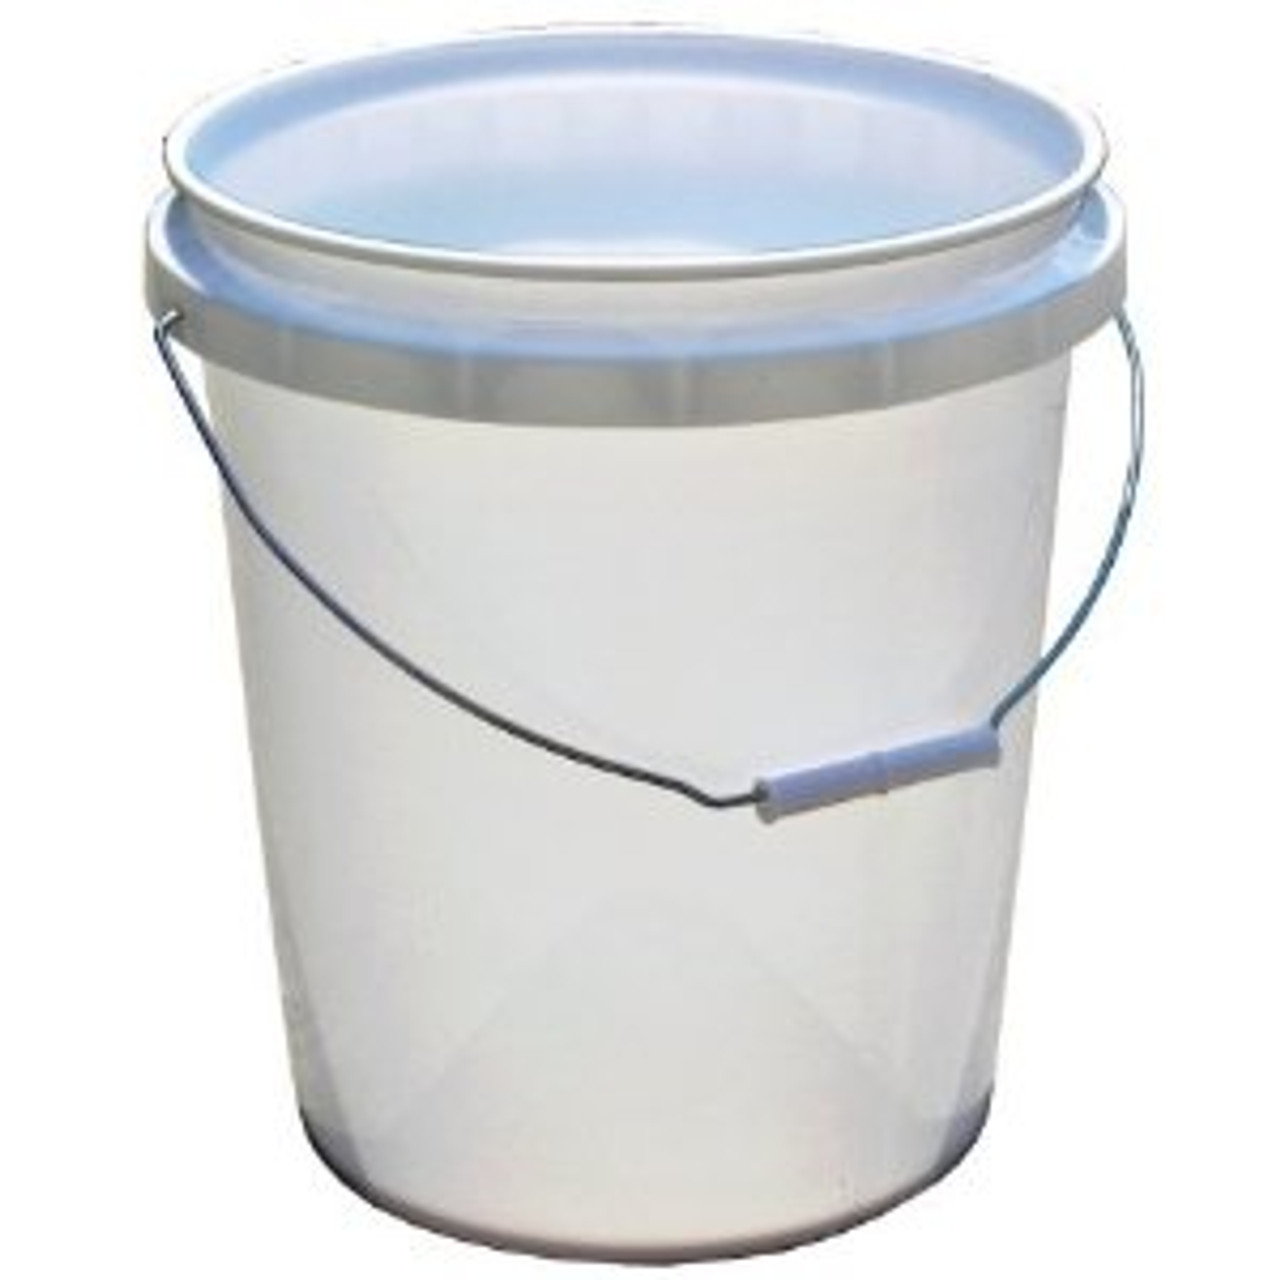 Pacoa White Plastic Pail with Cover